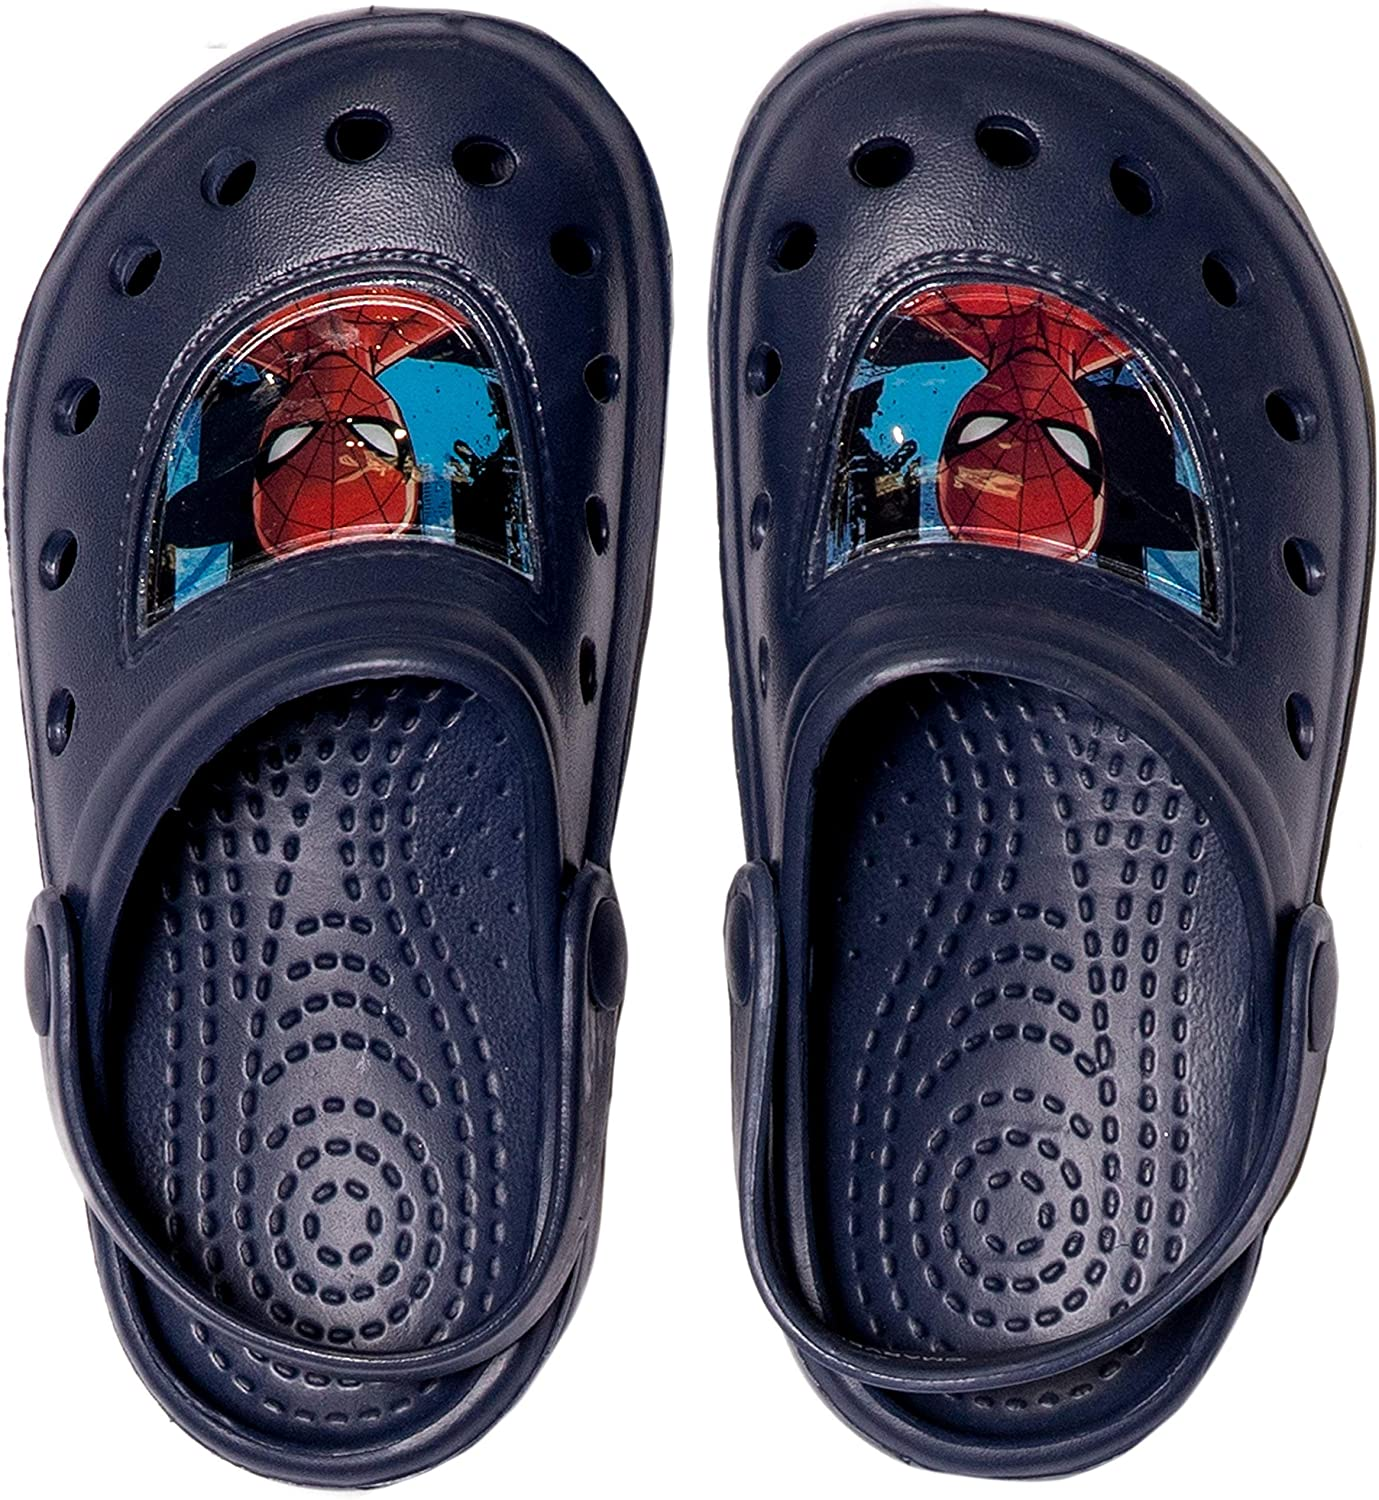 Marvel Spiderman Official Boys Clogs or Sliders Flip Flops Sandals Waterproof with 3D Character Picture 8-13 Child UK Sizes